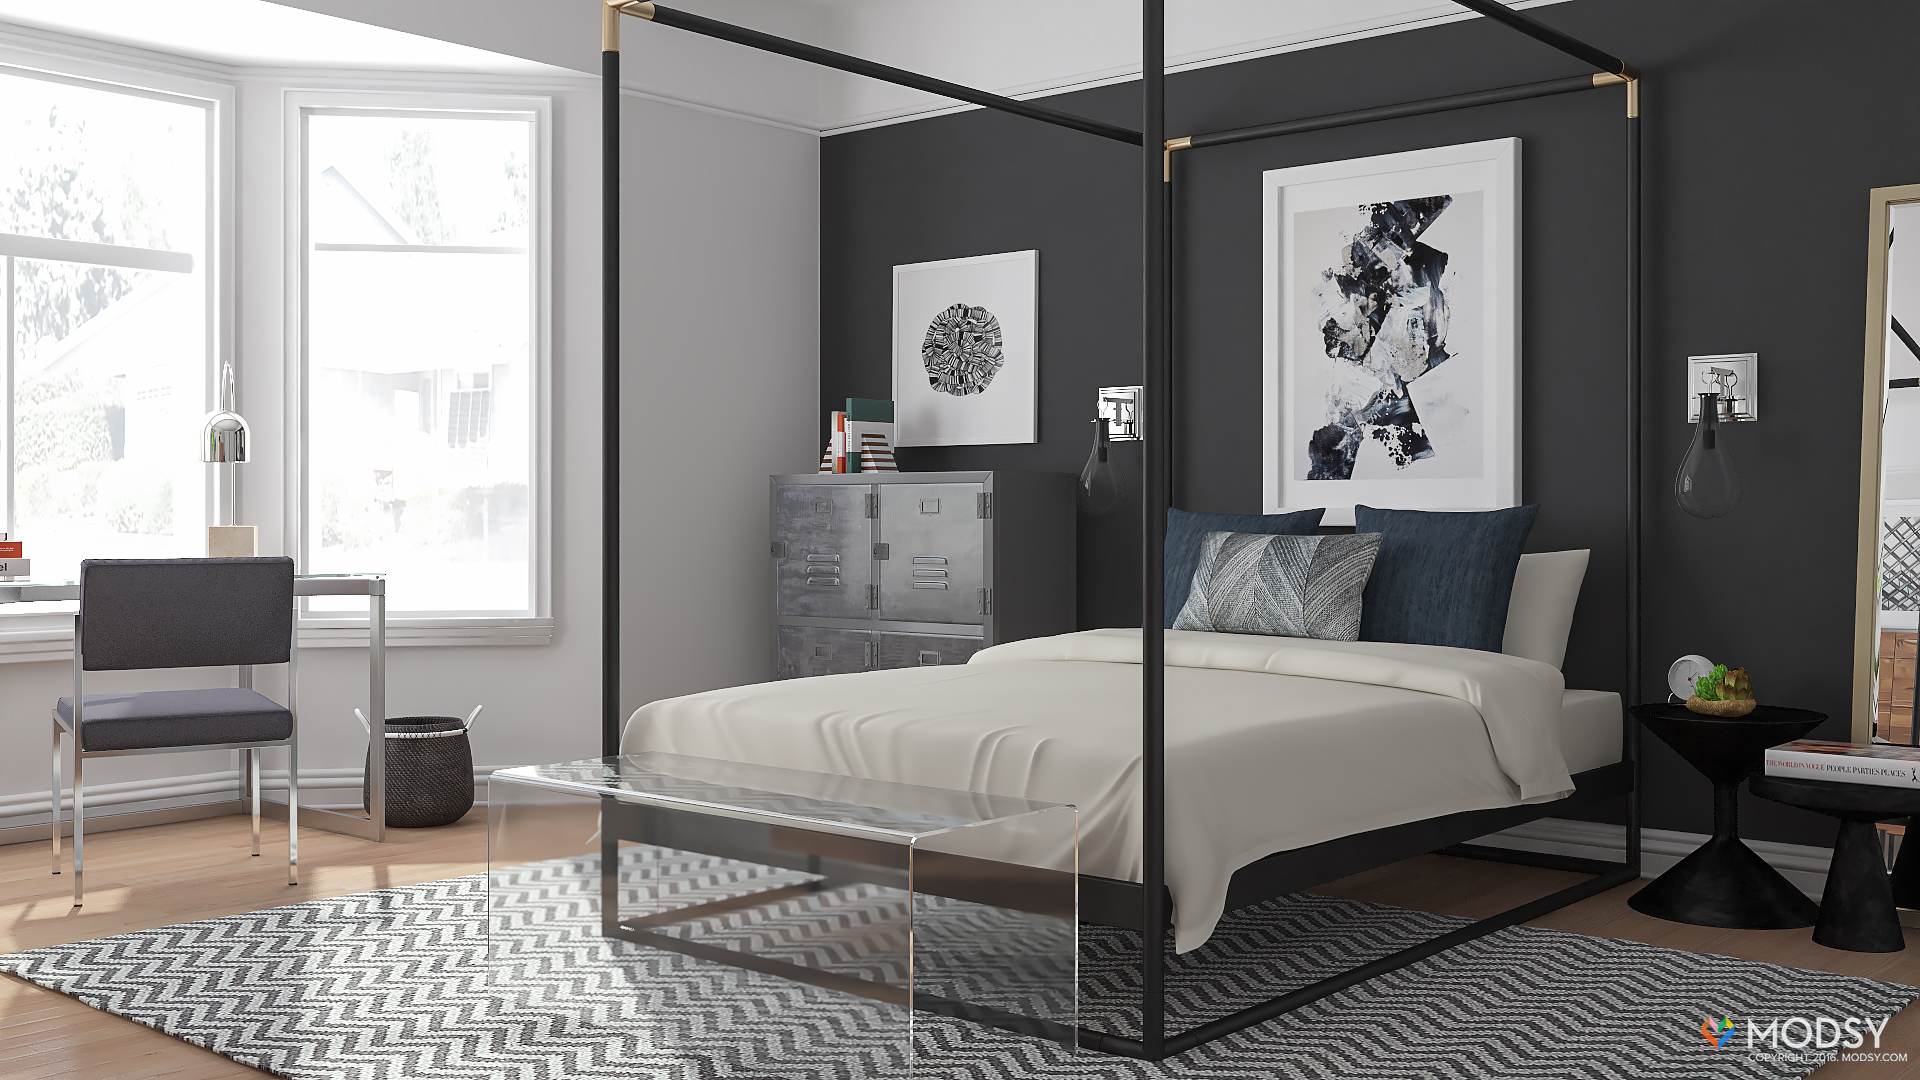 Designing an Industrial Bedroom with a Minimal Twist